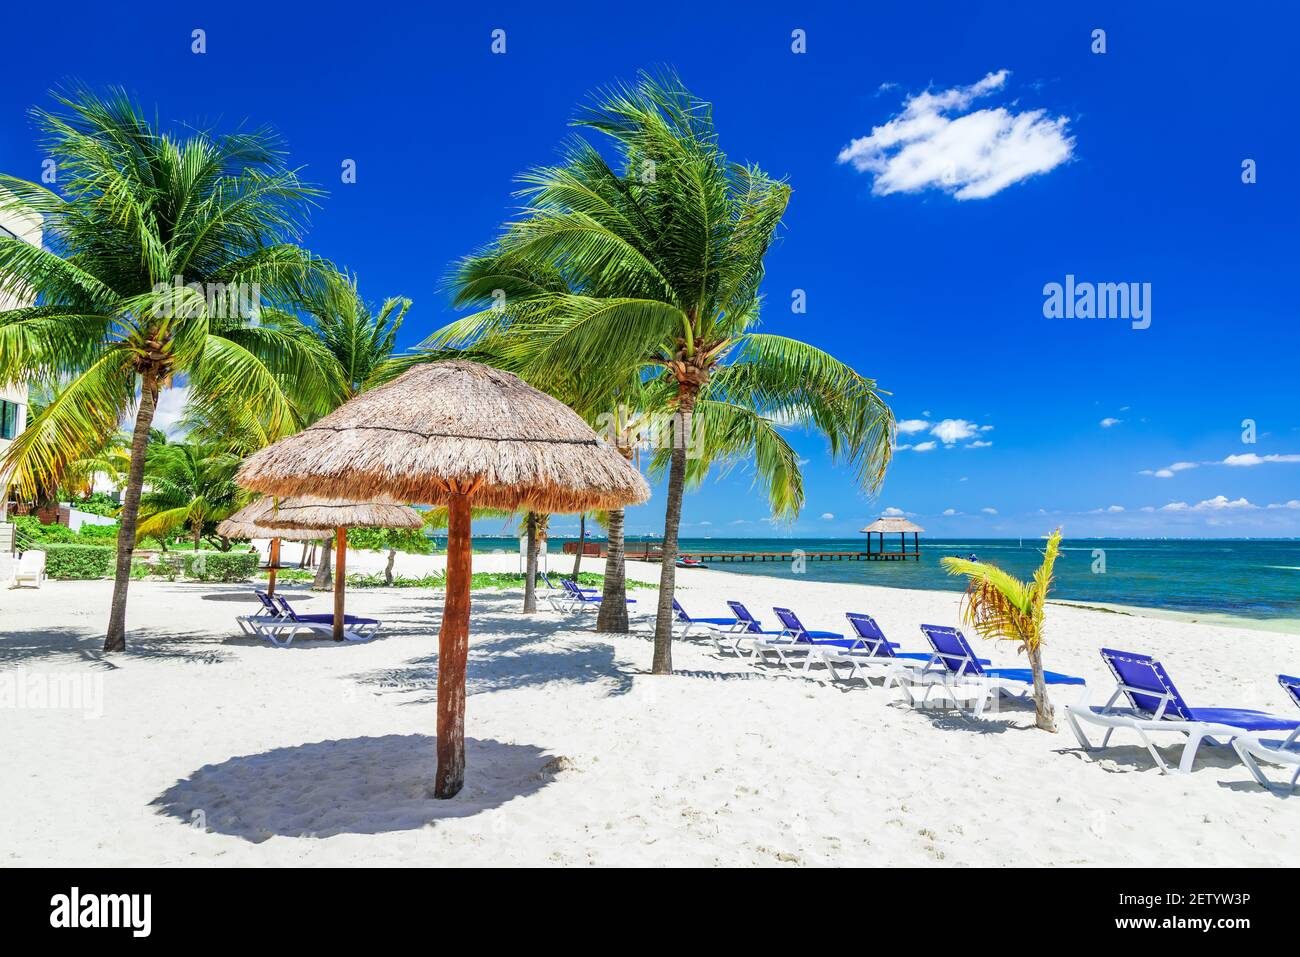 Cancun, Mexico - Tropical landscape with coconut palm trees Caribbean beach Yucatan Peninsula in Central America Stock Photo